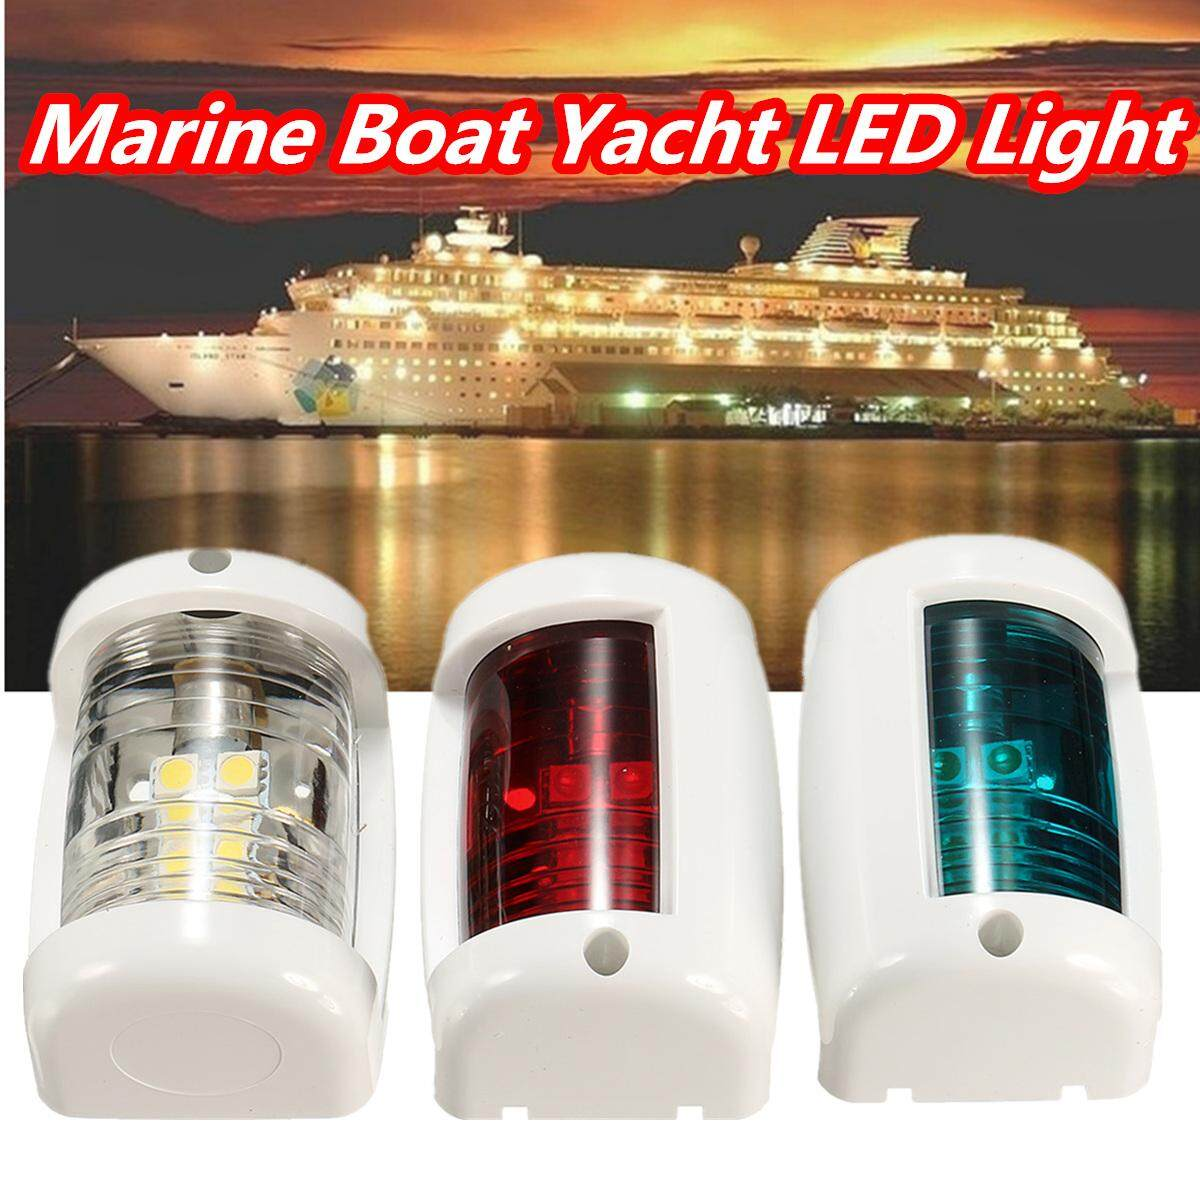 Original 12v Marine Boat Yacht Led Navigation Compass Light For Sail Ship Vehicle Car Electronic Atv,rv,boat & Other Vehicle